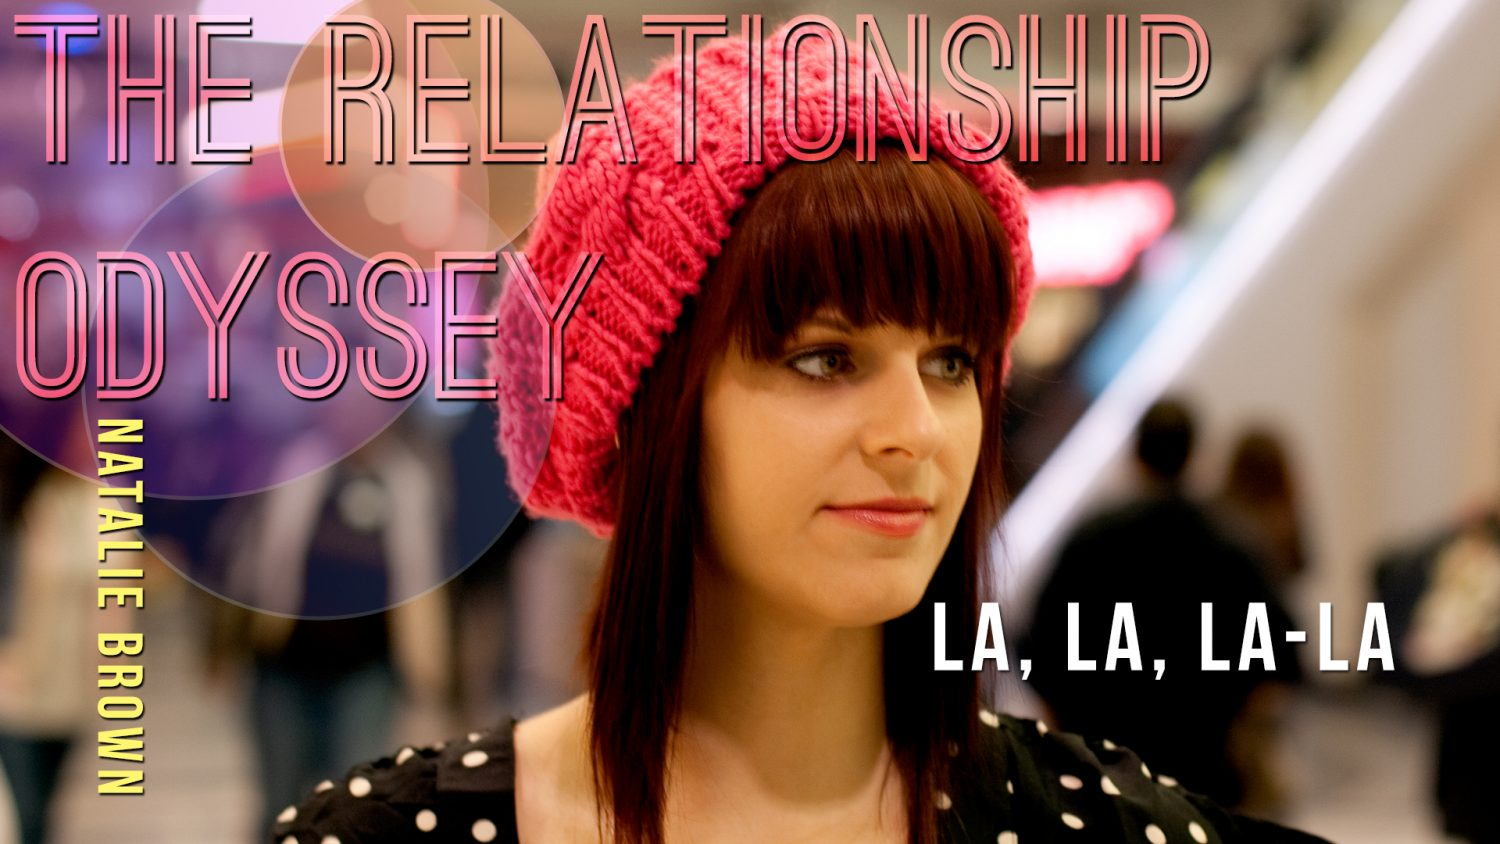 La, La, La-La | Natalie Brown | The Relationship Odyssey